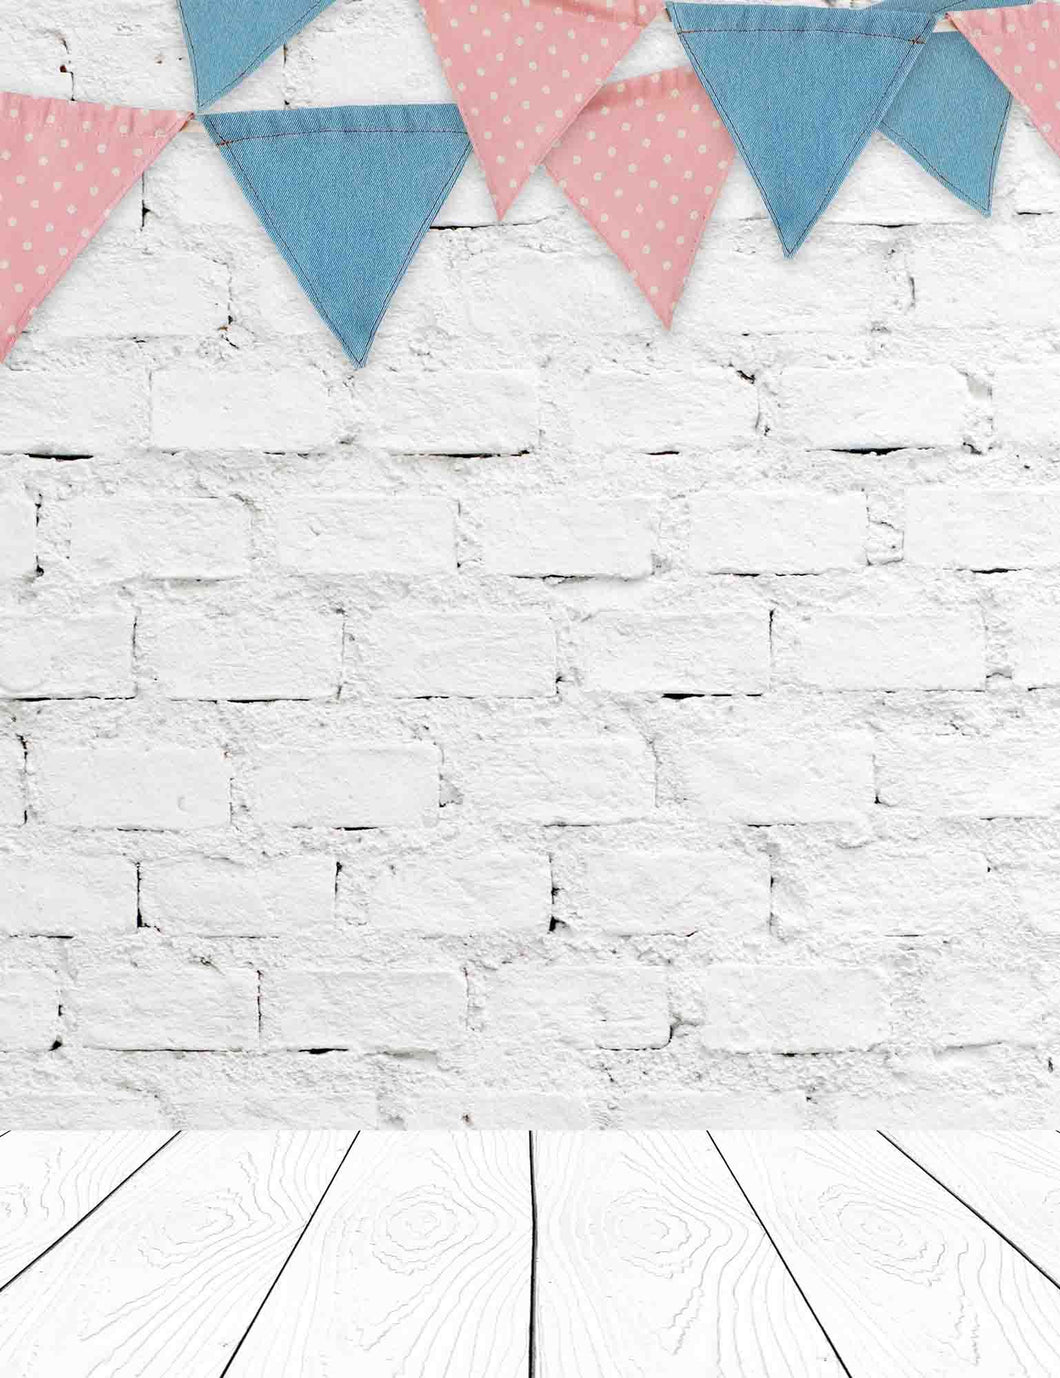 Party Flags Hanging On White Brick Wall With Wood Floor Backdrop